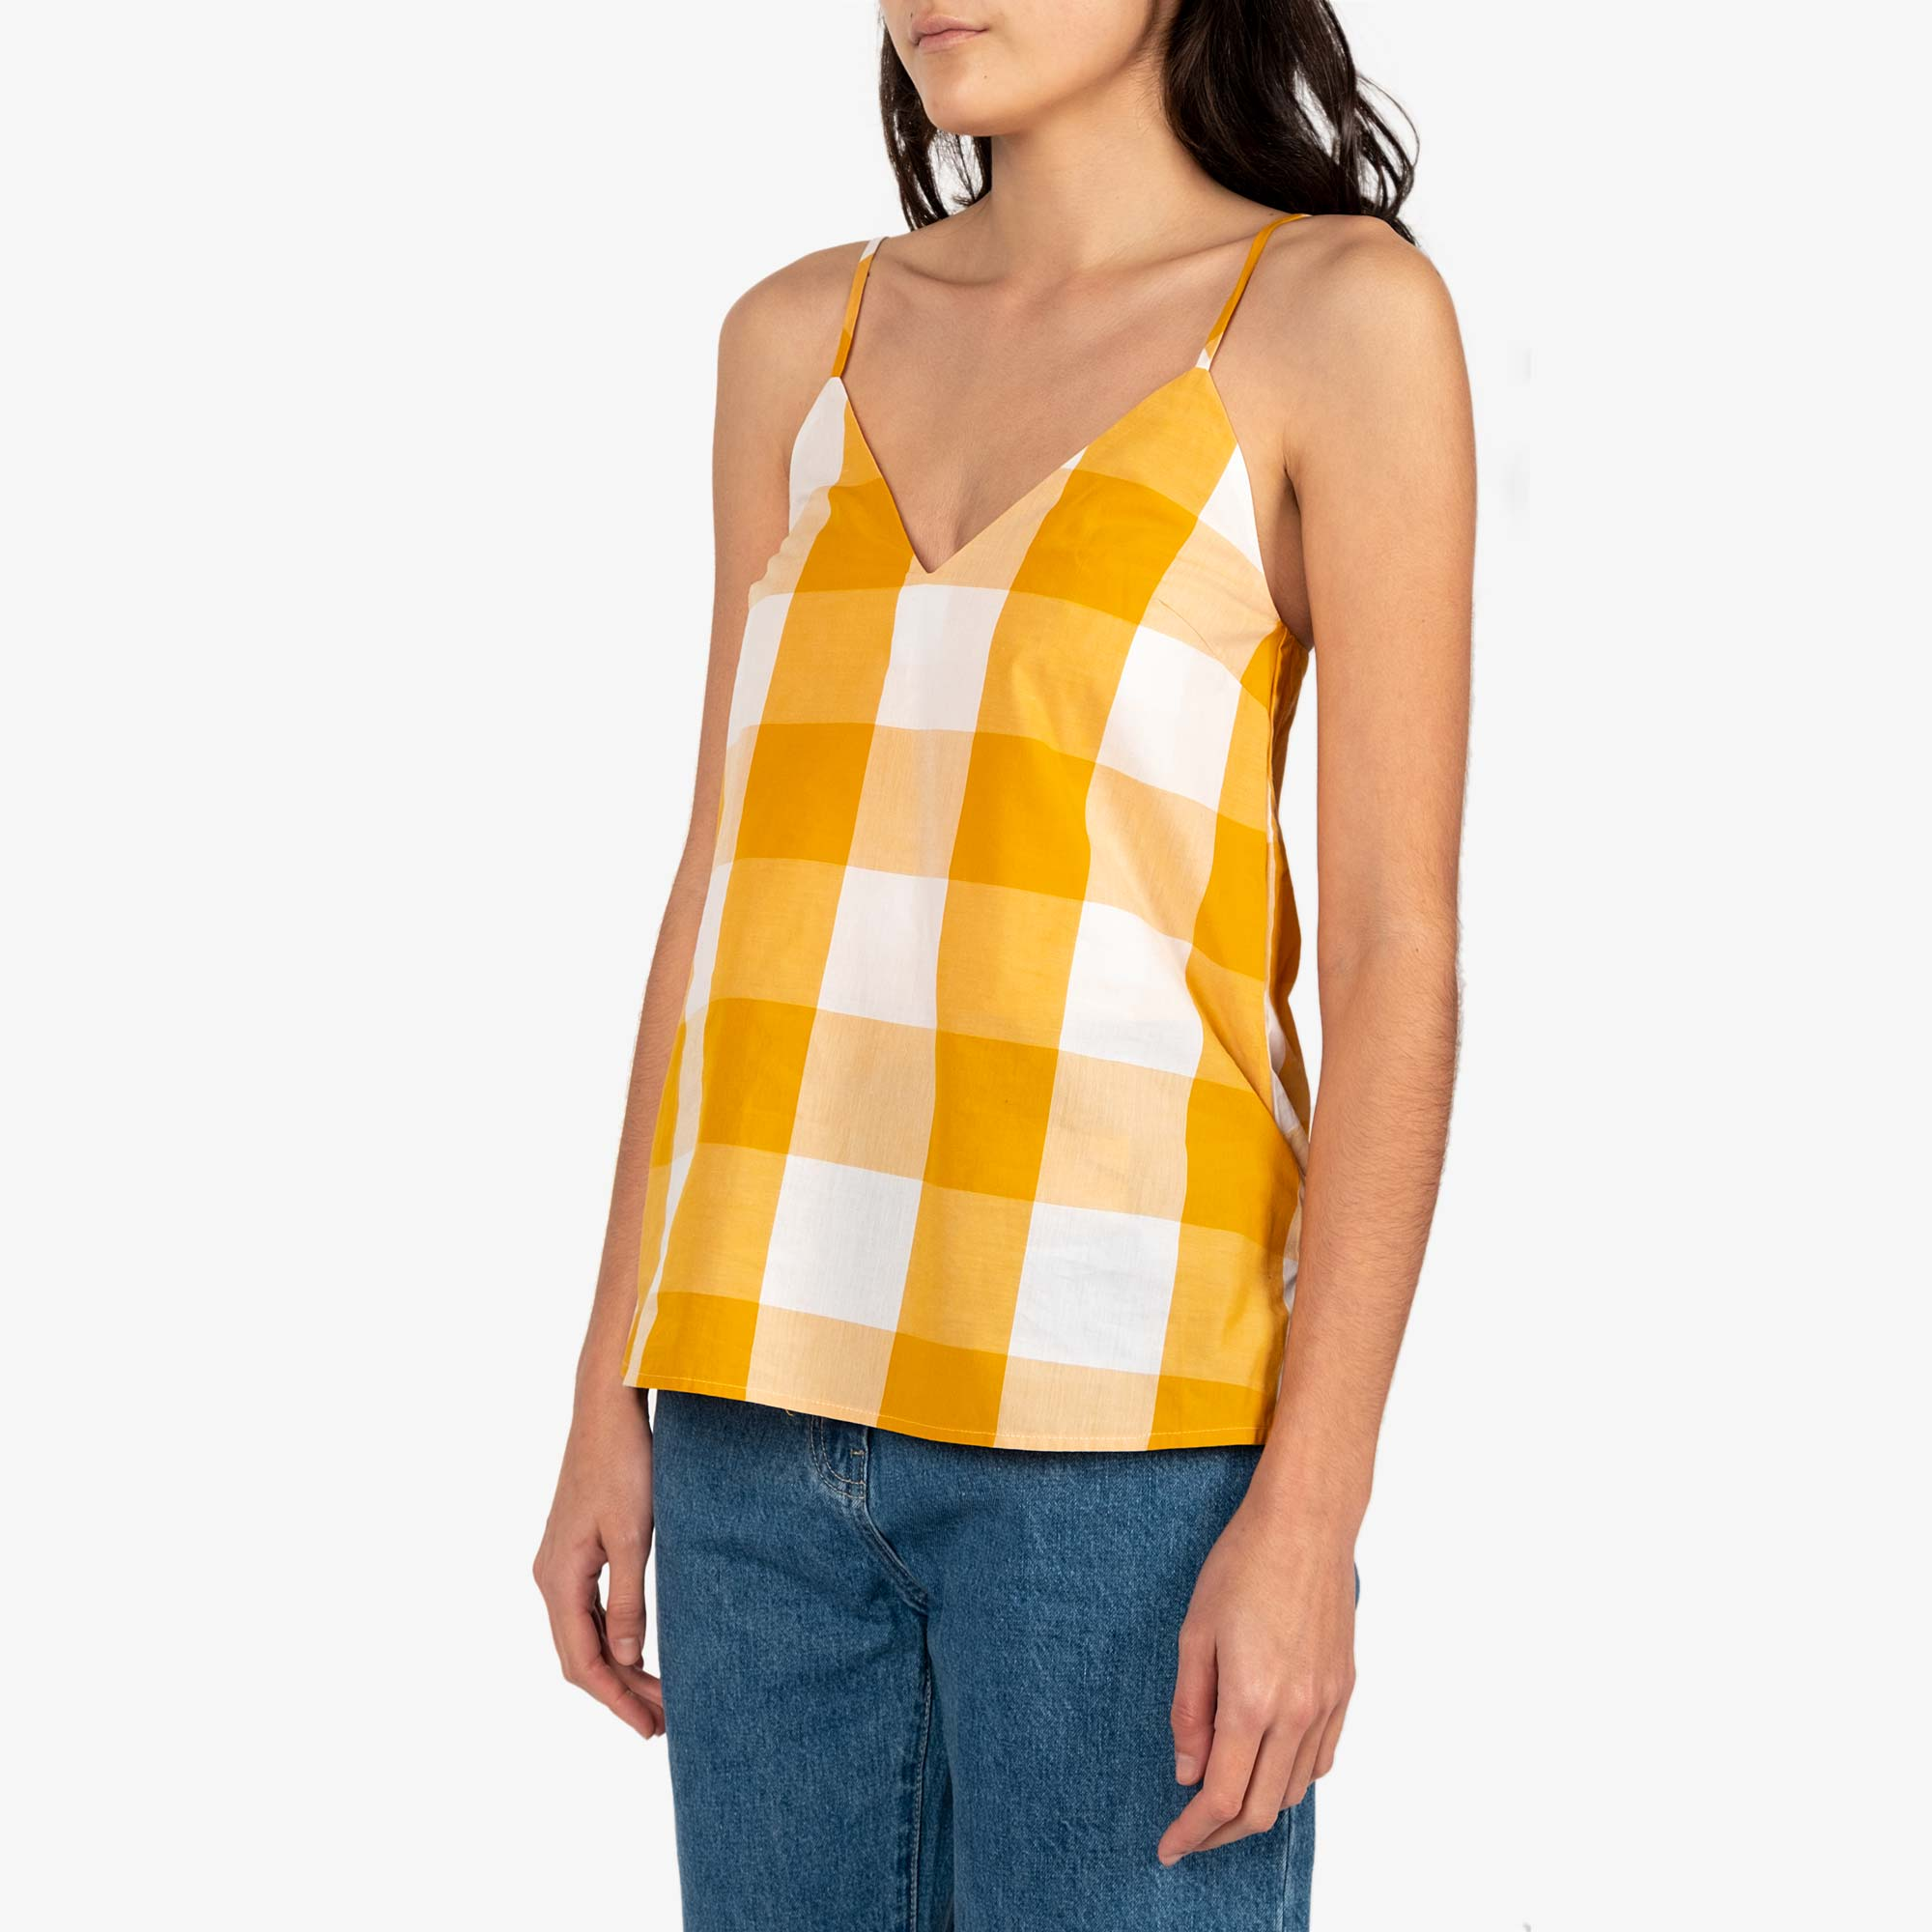 Kowtow Stencil Top - Daisy Check 3